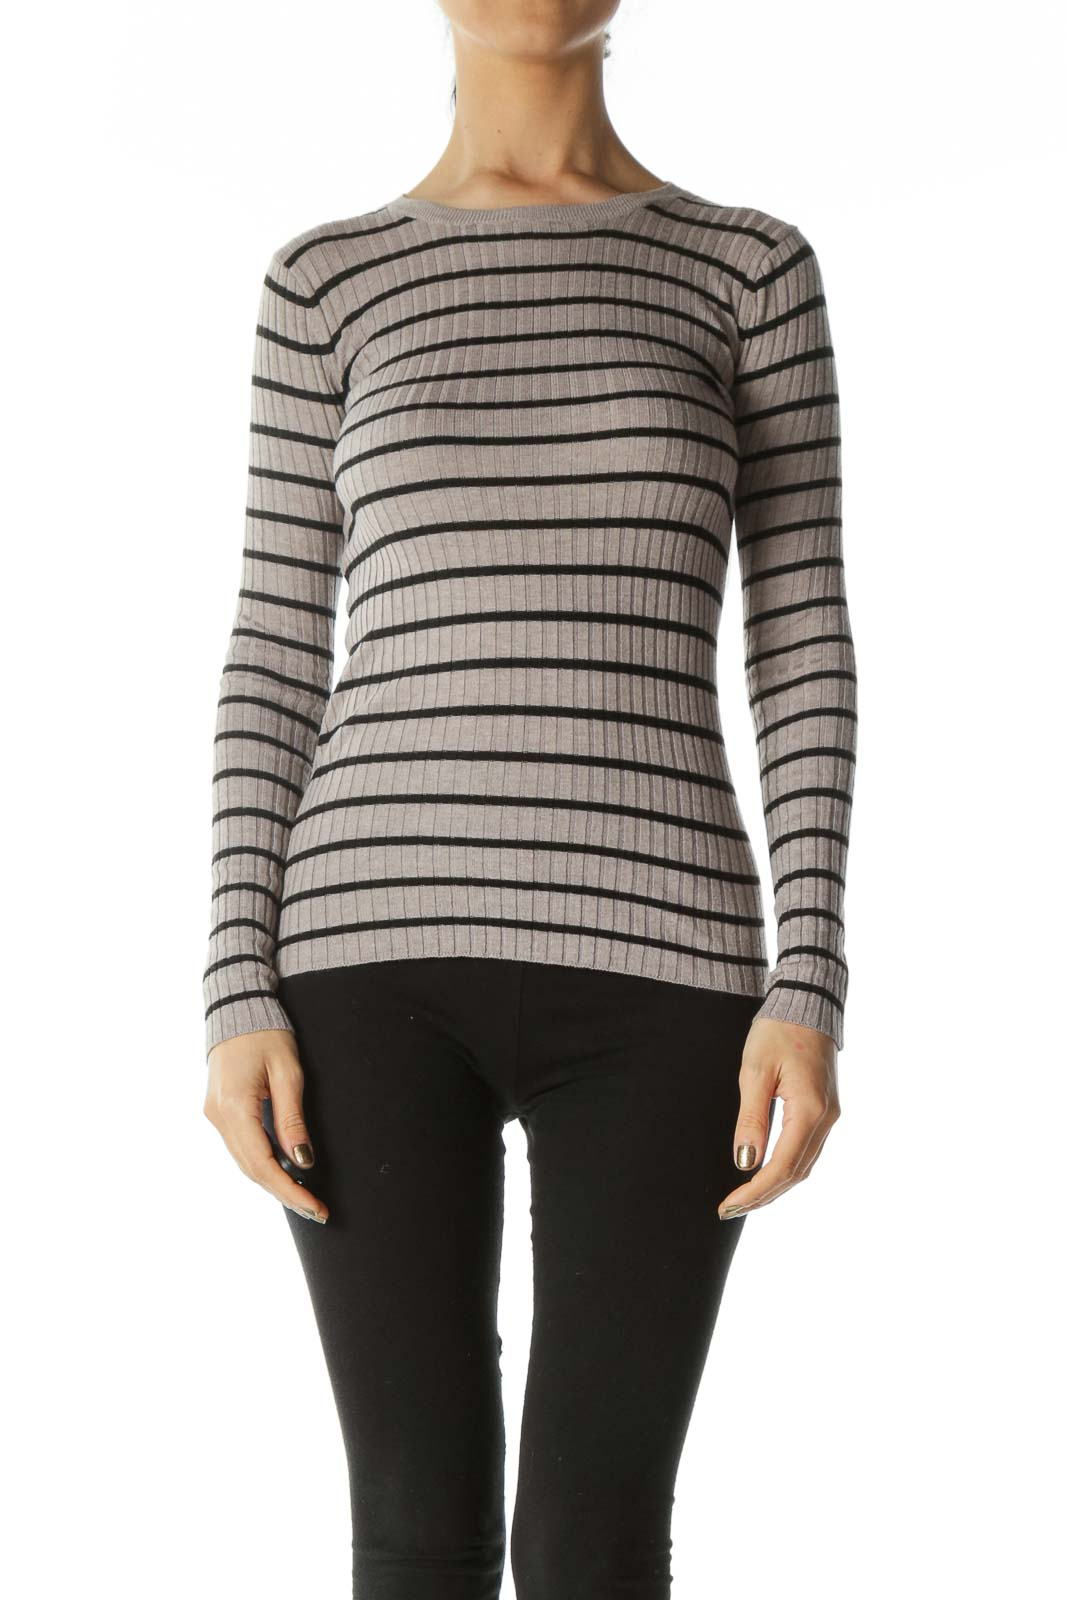 Grey and Black Striped Ribbed Long Sleeve Top Front